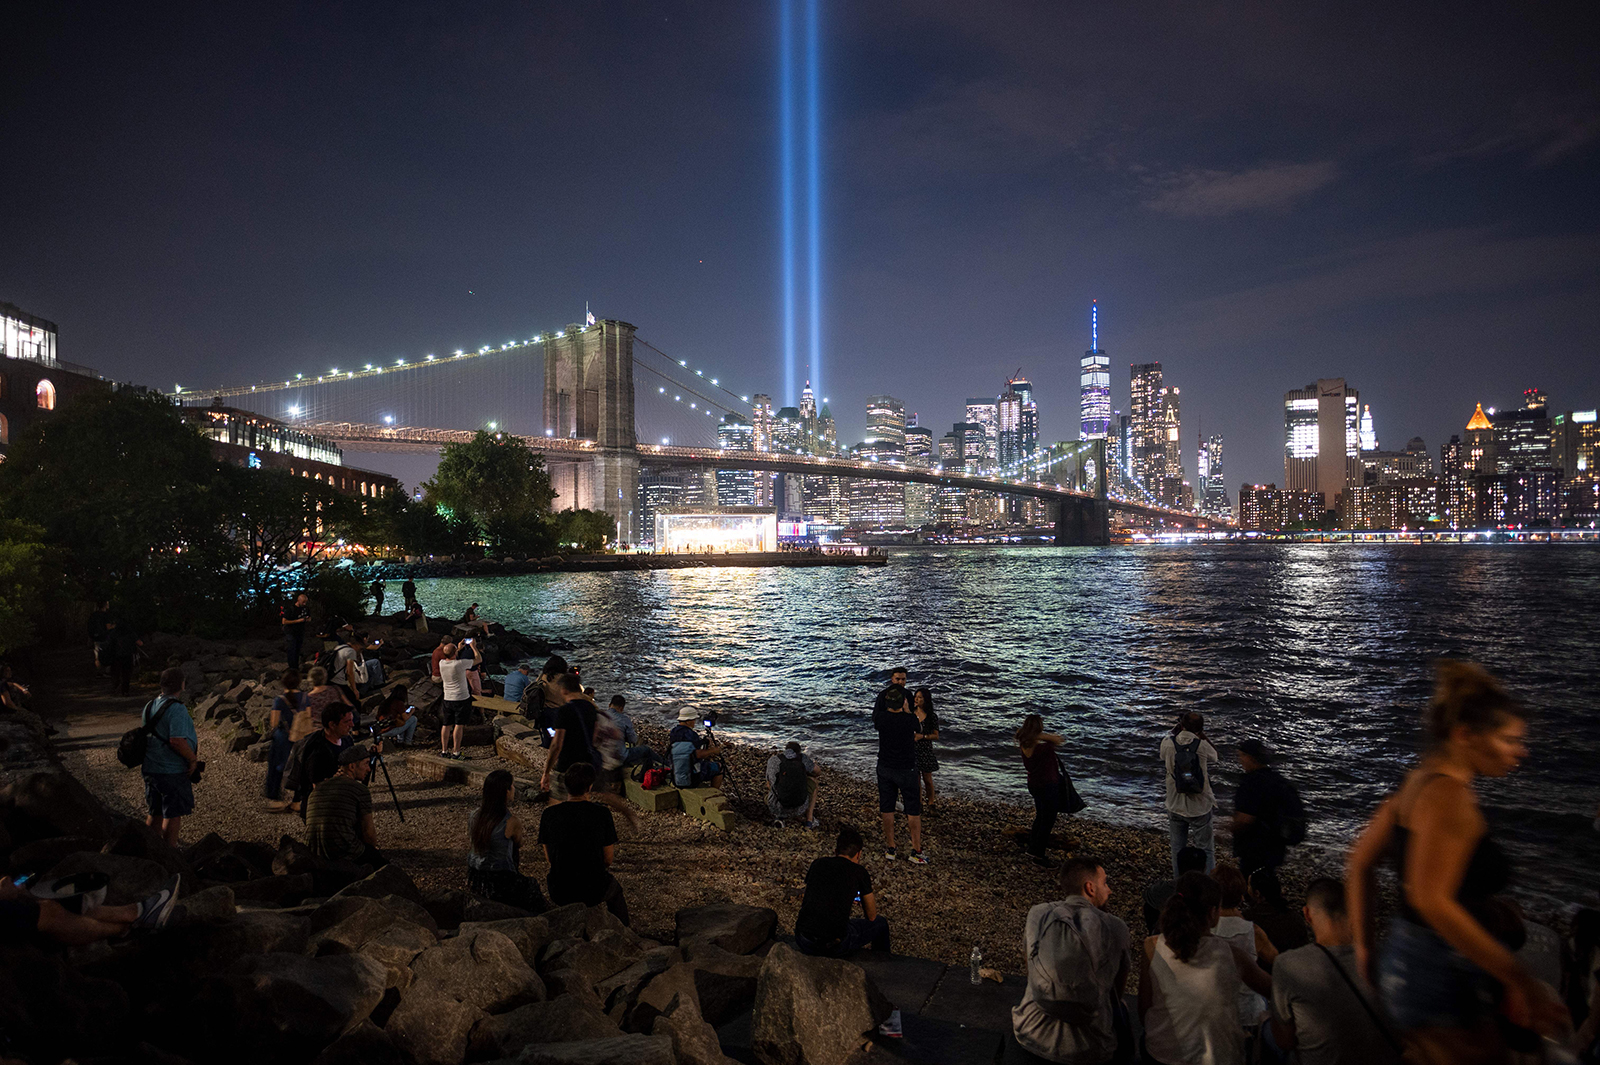 New York City's 'Tribute in Light' honoring 9/11 victims has been canceled this year over Covid-19 concerns